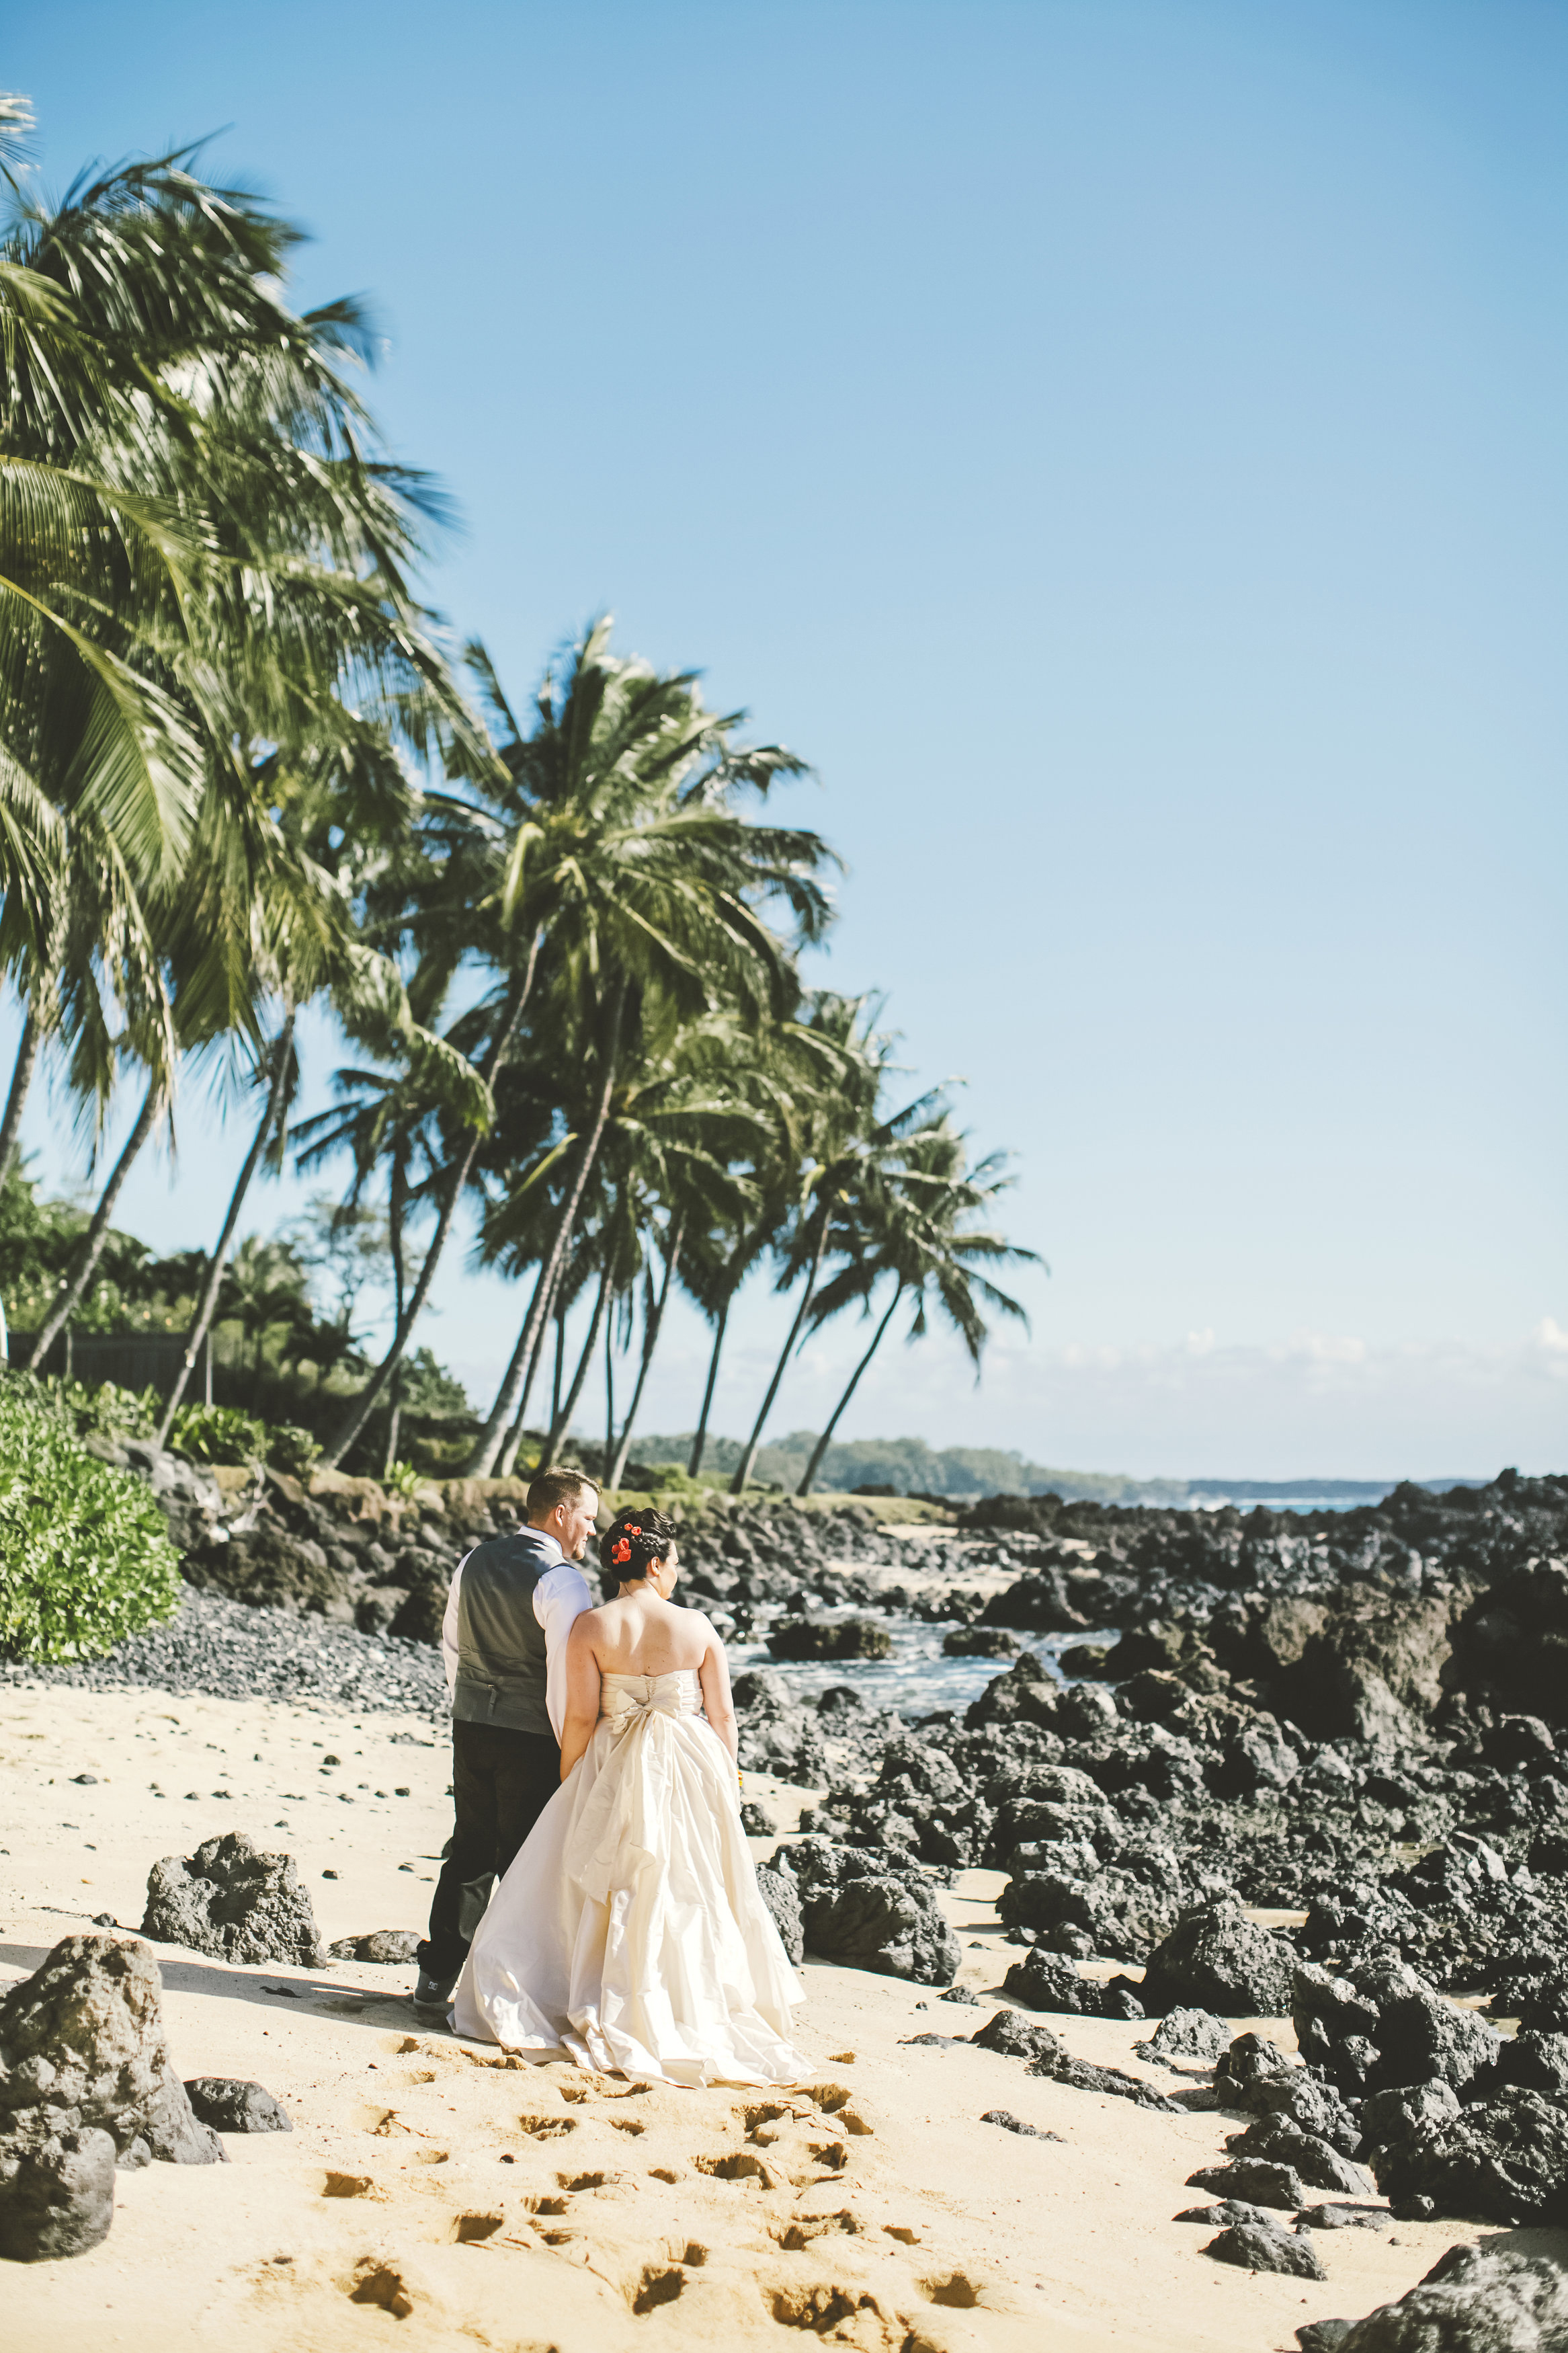 angie-diaz-photography-maui-elopement-32.jpg